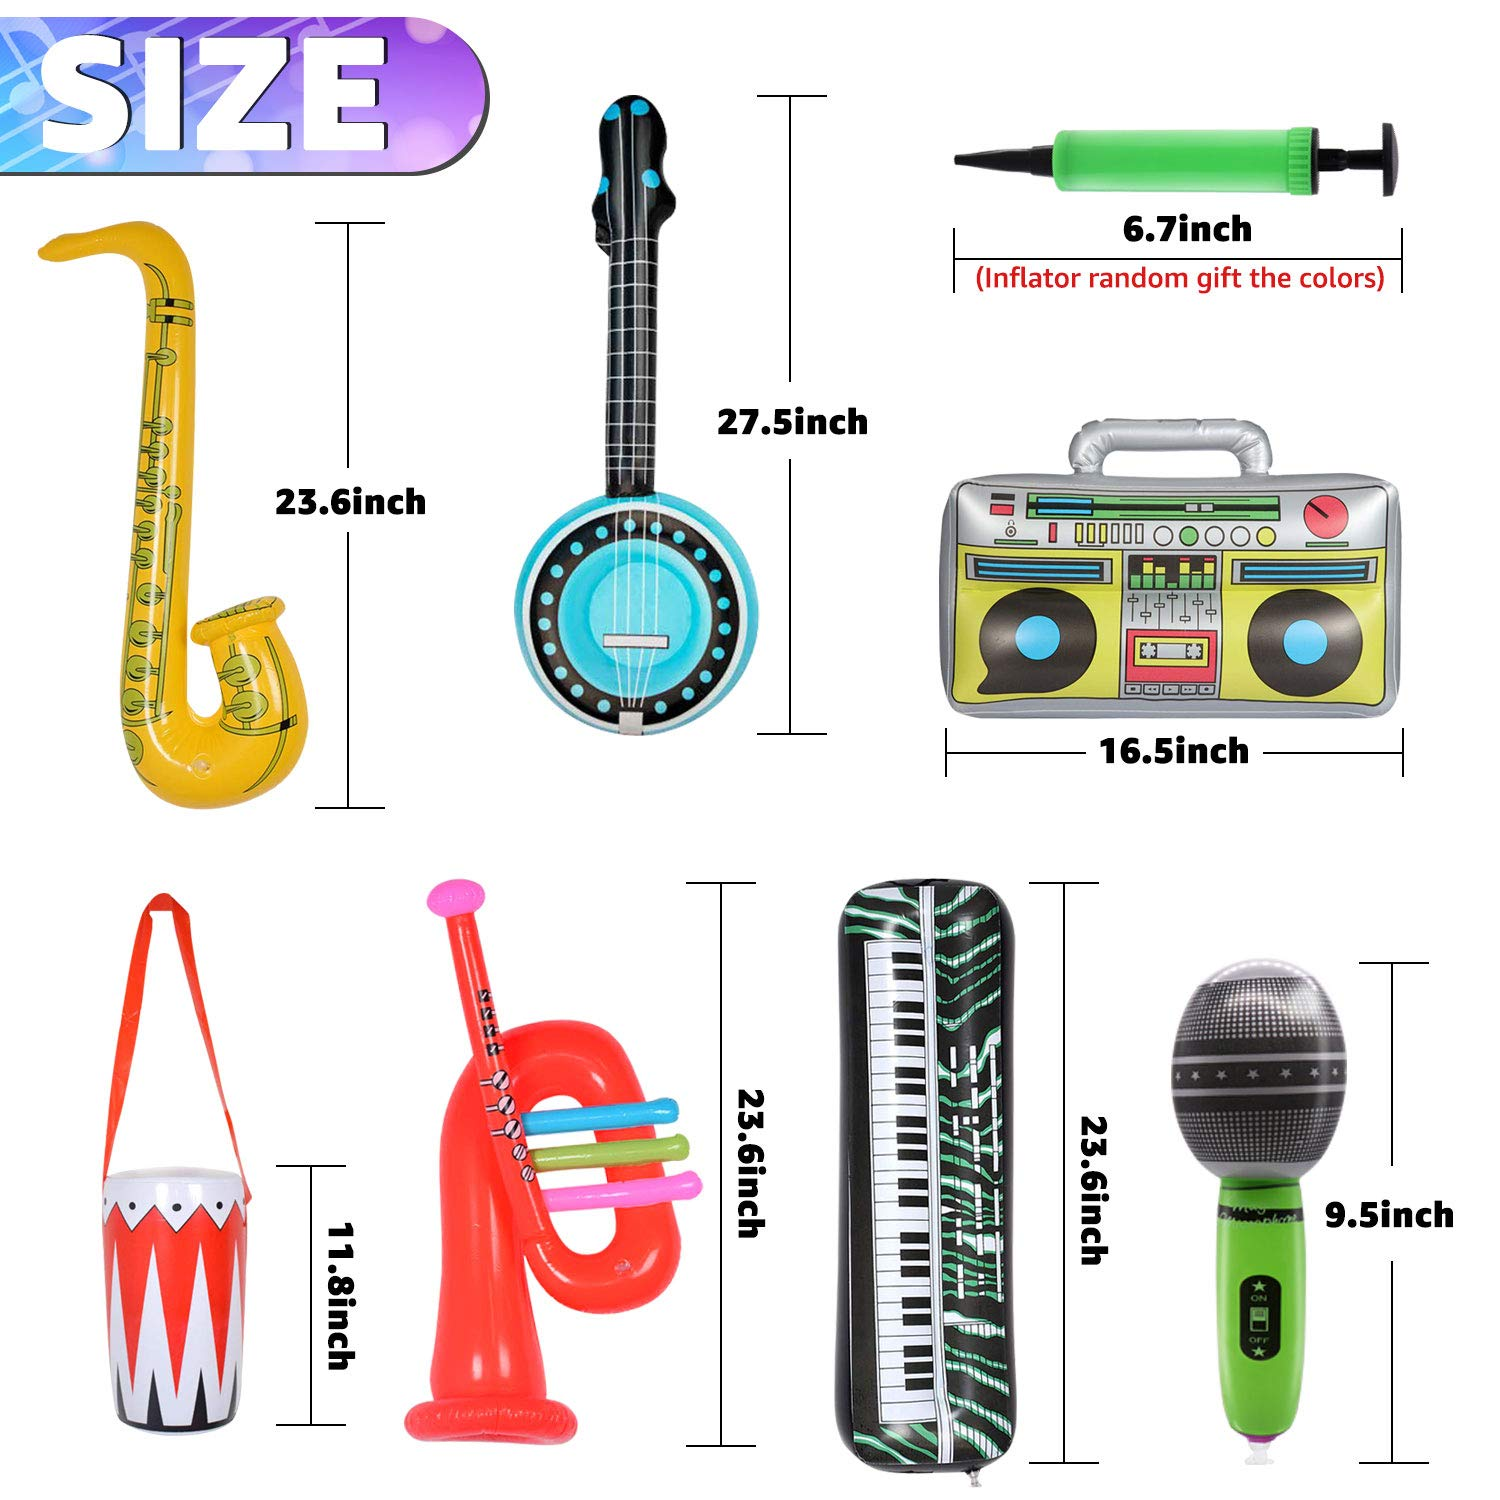 14 Pieces Inflatable Rock Star Toy Set- Inflatable Party Props Drum and keyboard Piano 1 pcs Inflatable Boom Box Radio 2 pcs Inflatable Lute Saxophone and Trumpet 5 pcs Microphones